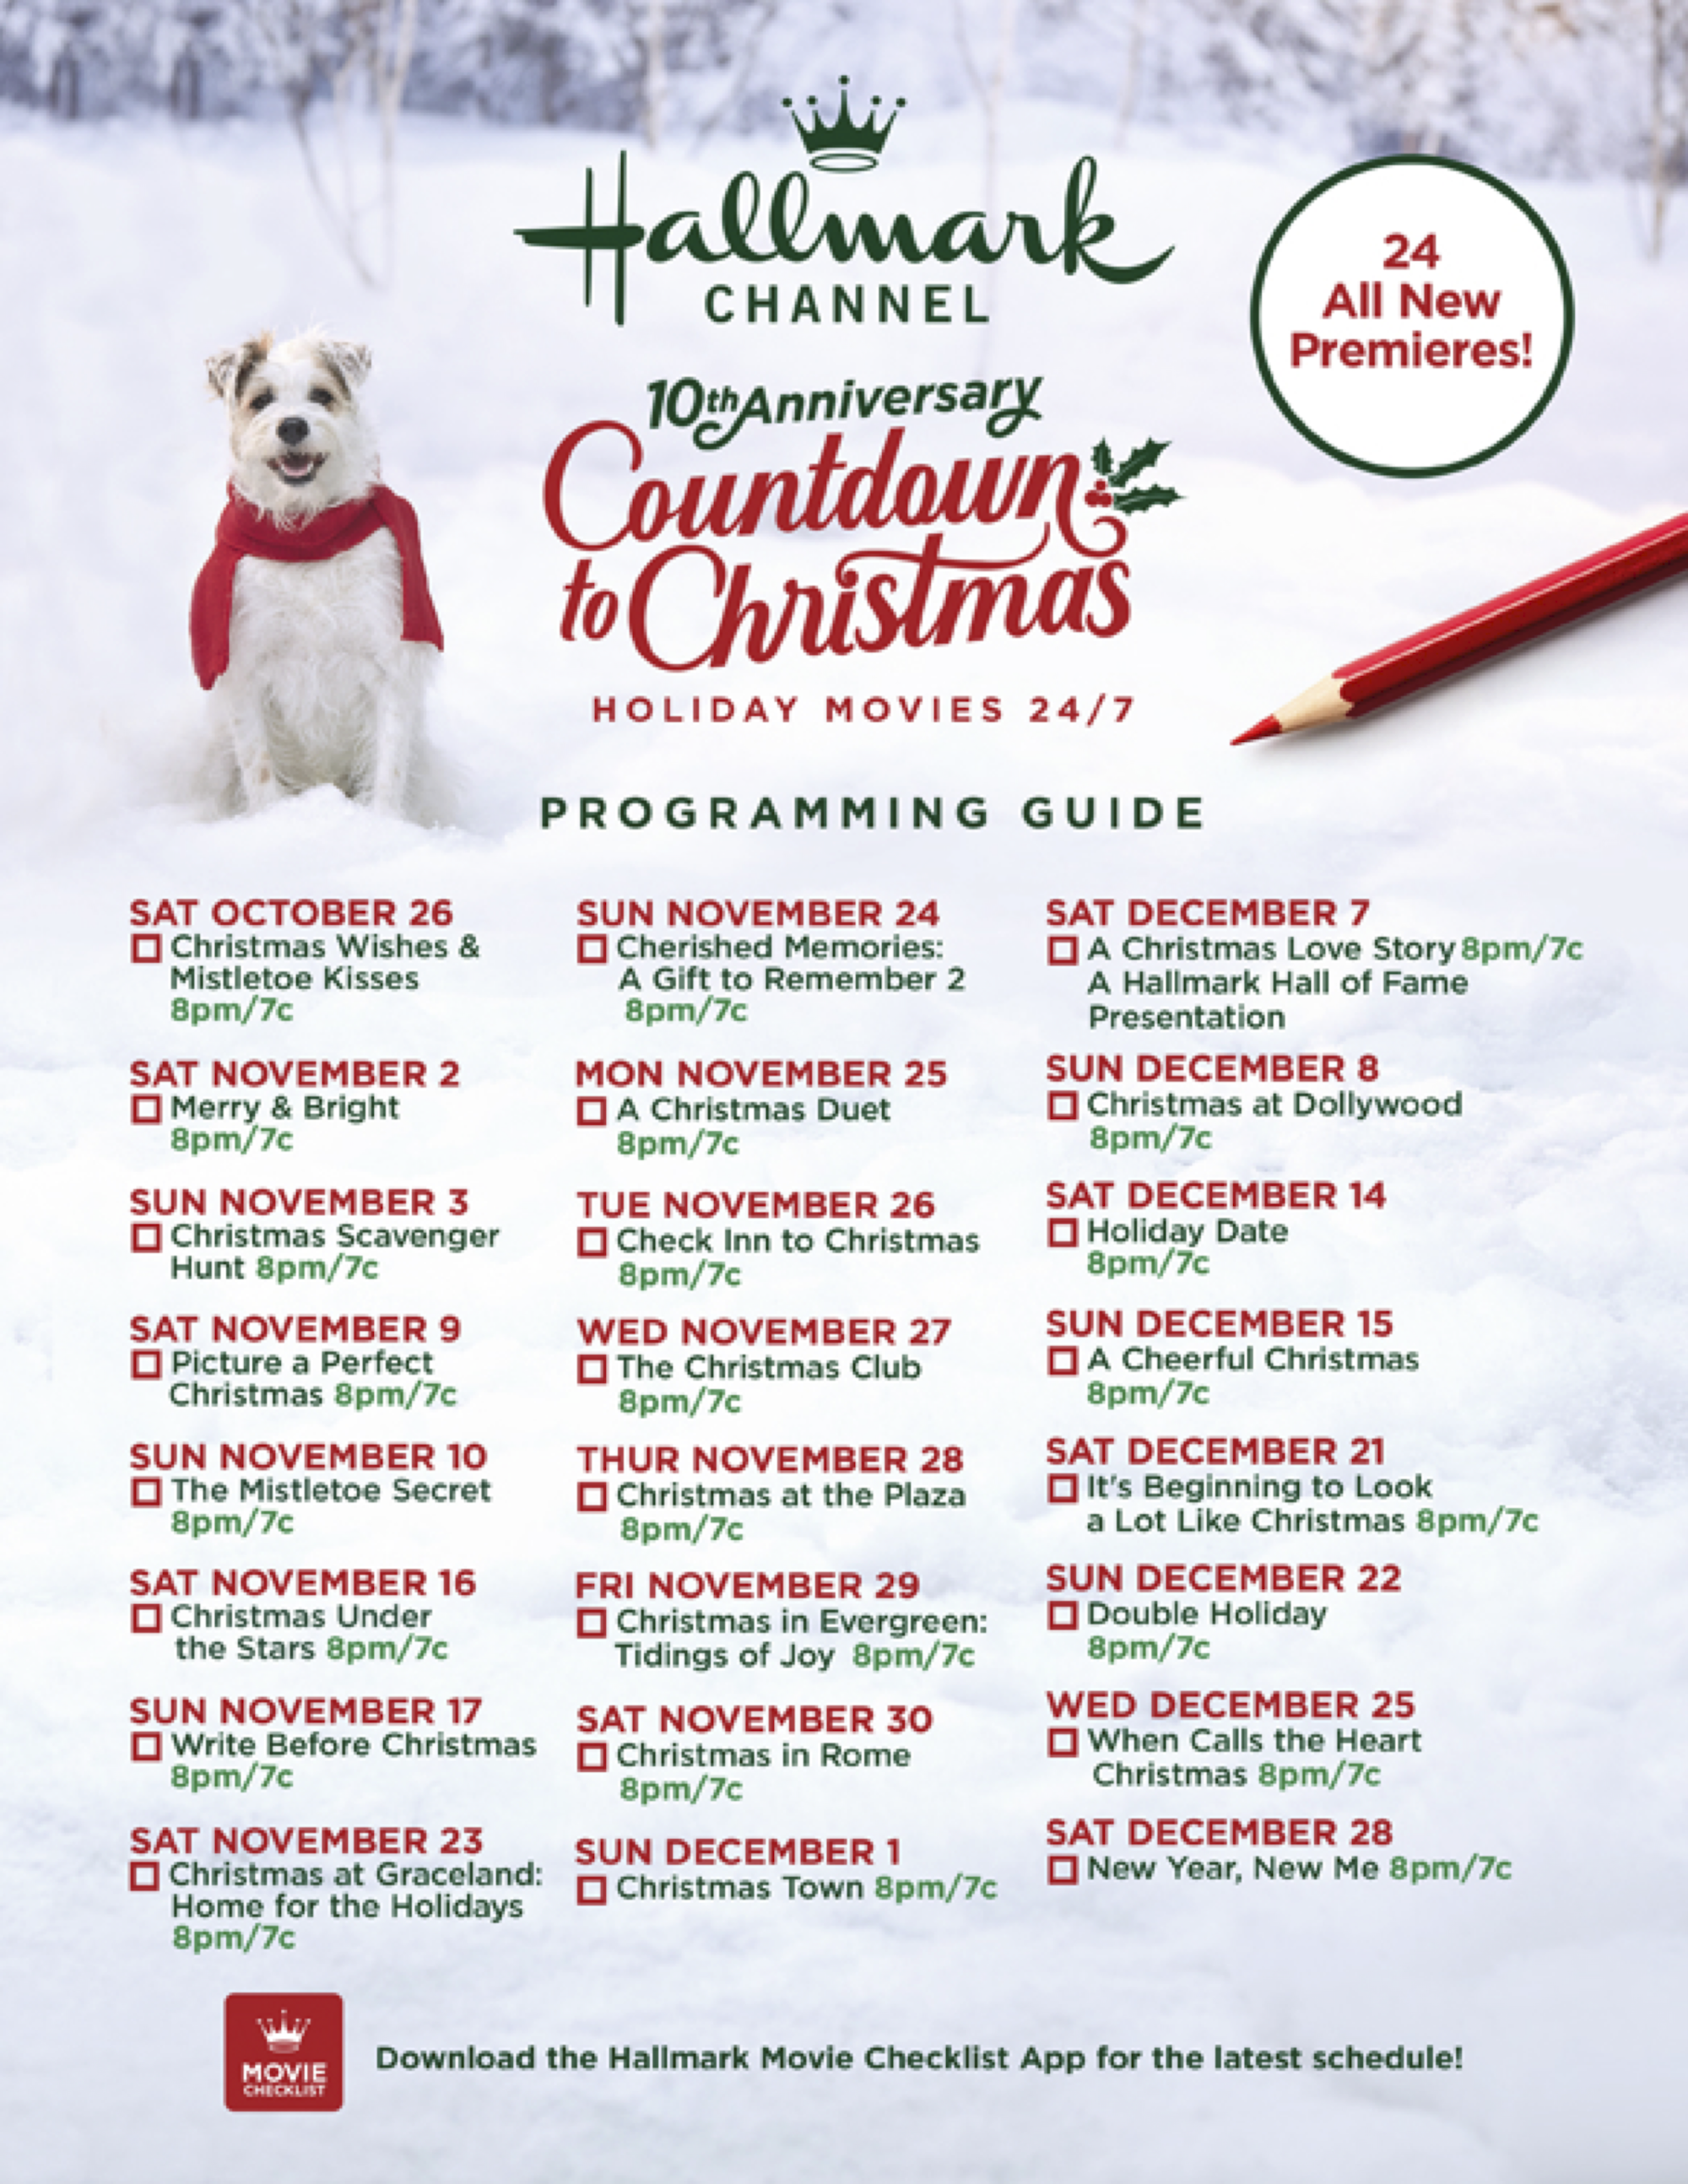 It S Here Save This 10th Anniversary Of Countdown To Christmas Movie Guide And Never Miss A Premi Christmas Shows Hallmark Christmas Movies Hallmark Christmas